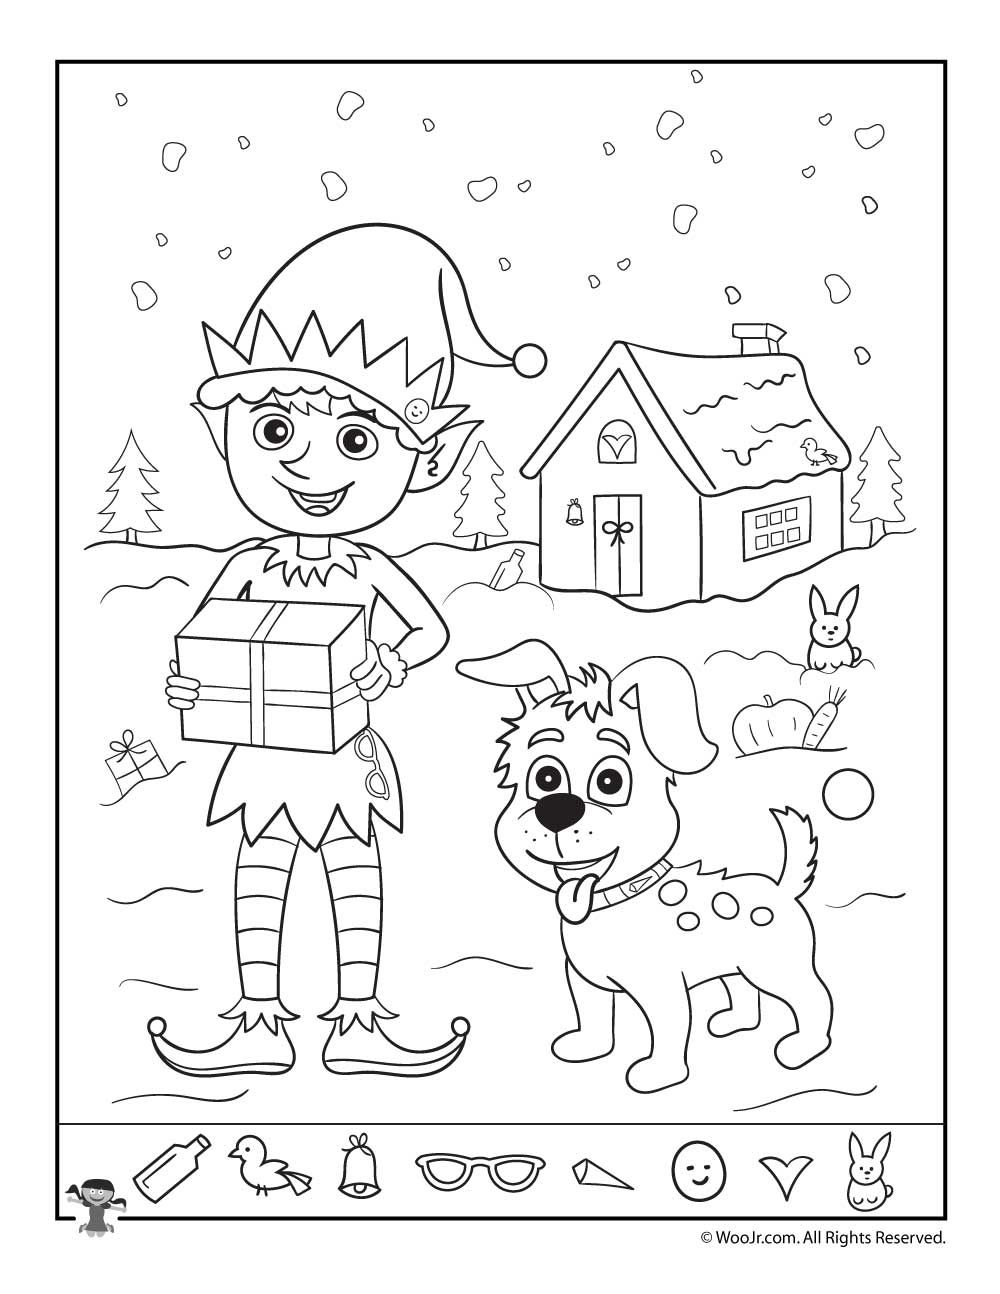 Santa's Helpers Christmas Hidden Picture Page | Hidden Pictures - Free Printable Christmas Hidden Picture Games